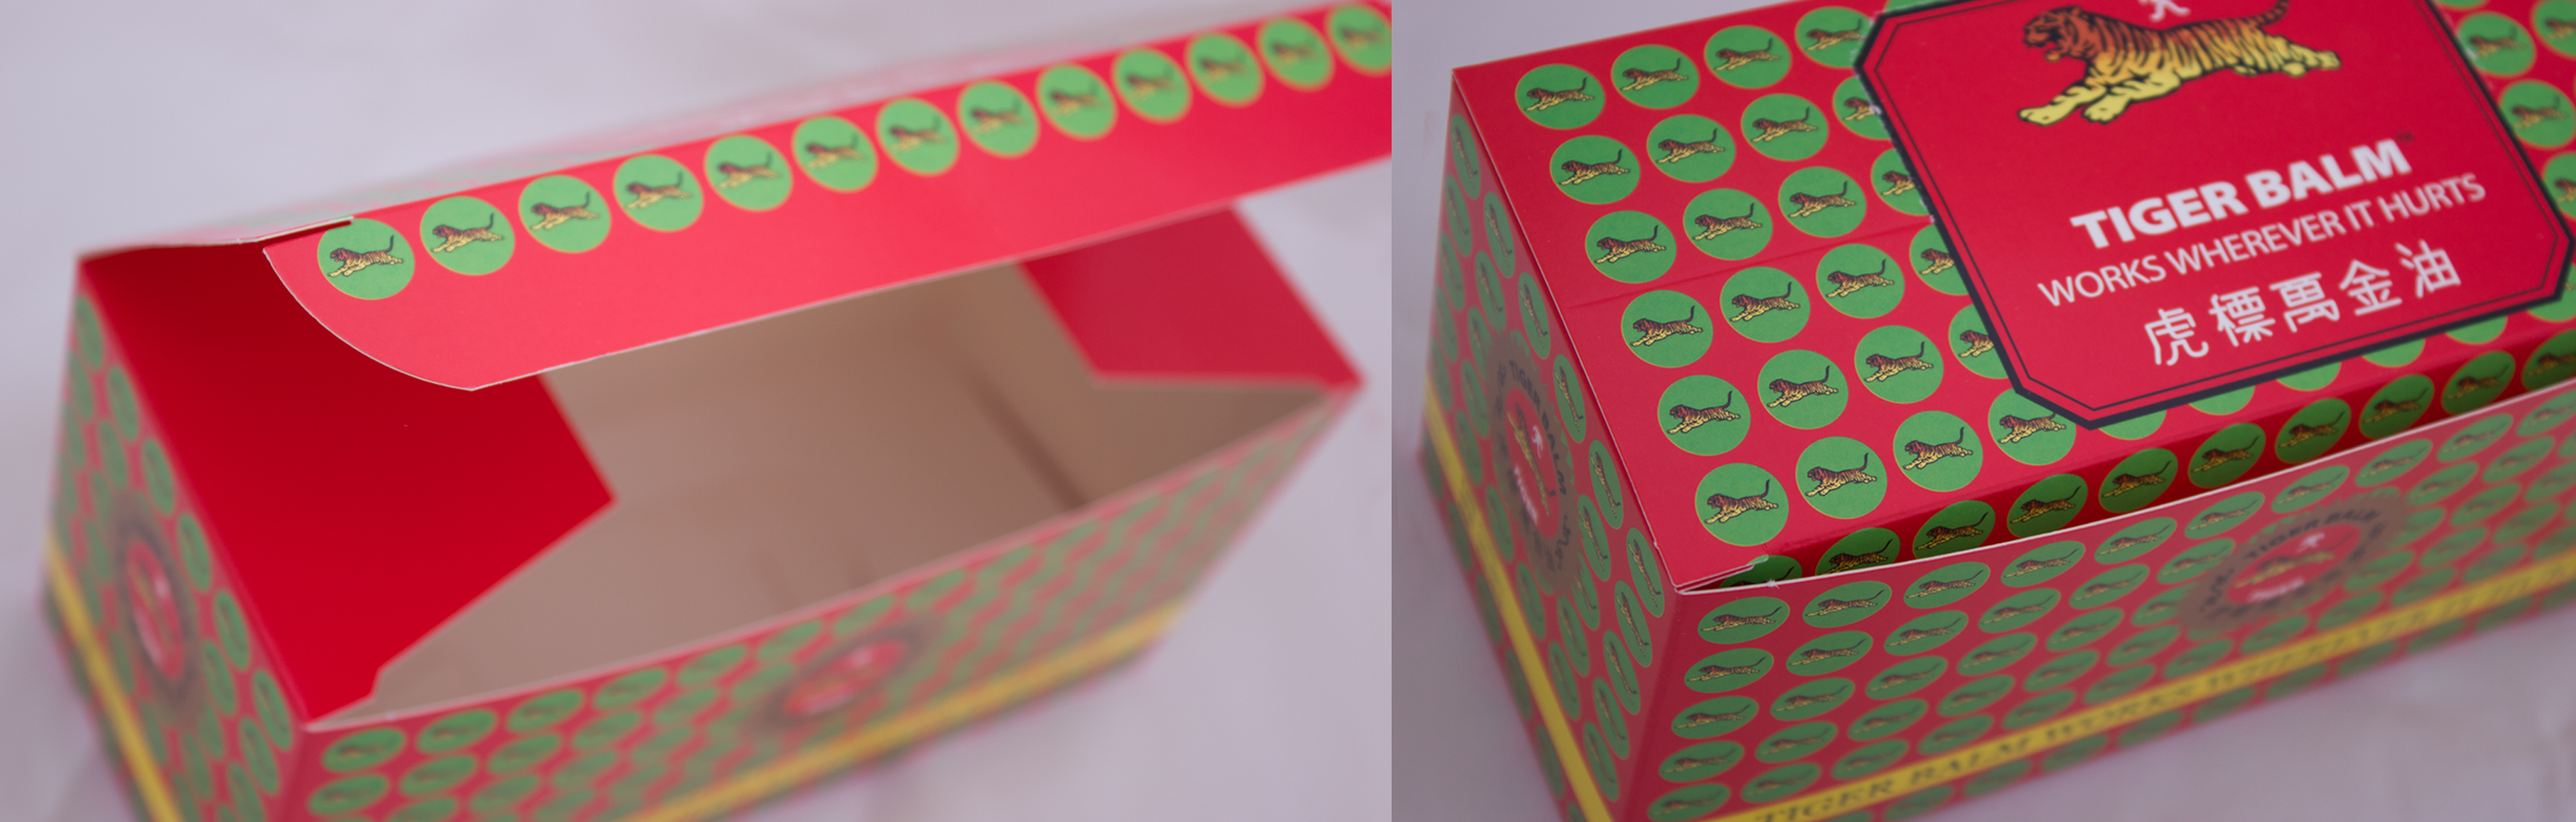 cardboard boxes offset printing with cutter forms die cutting banner